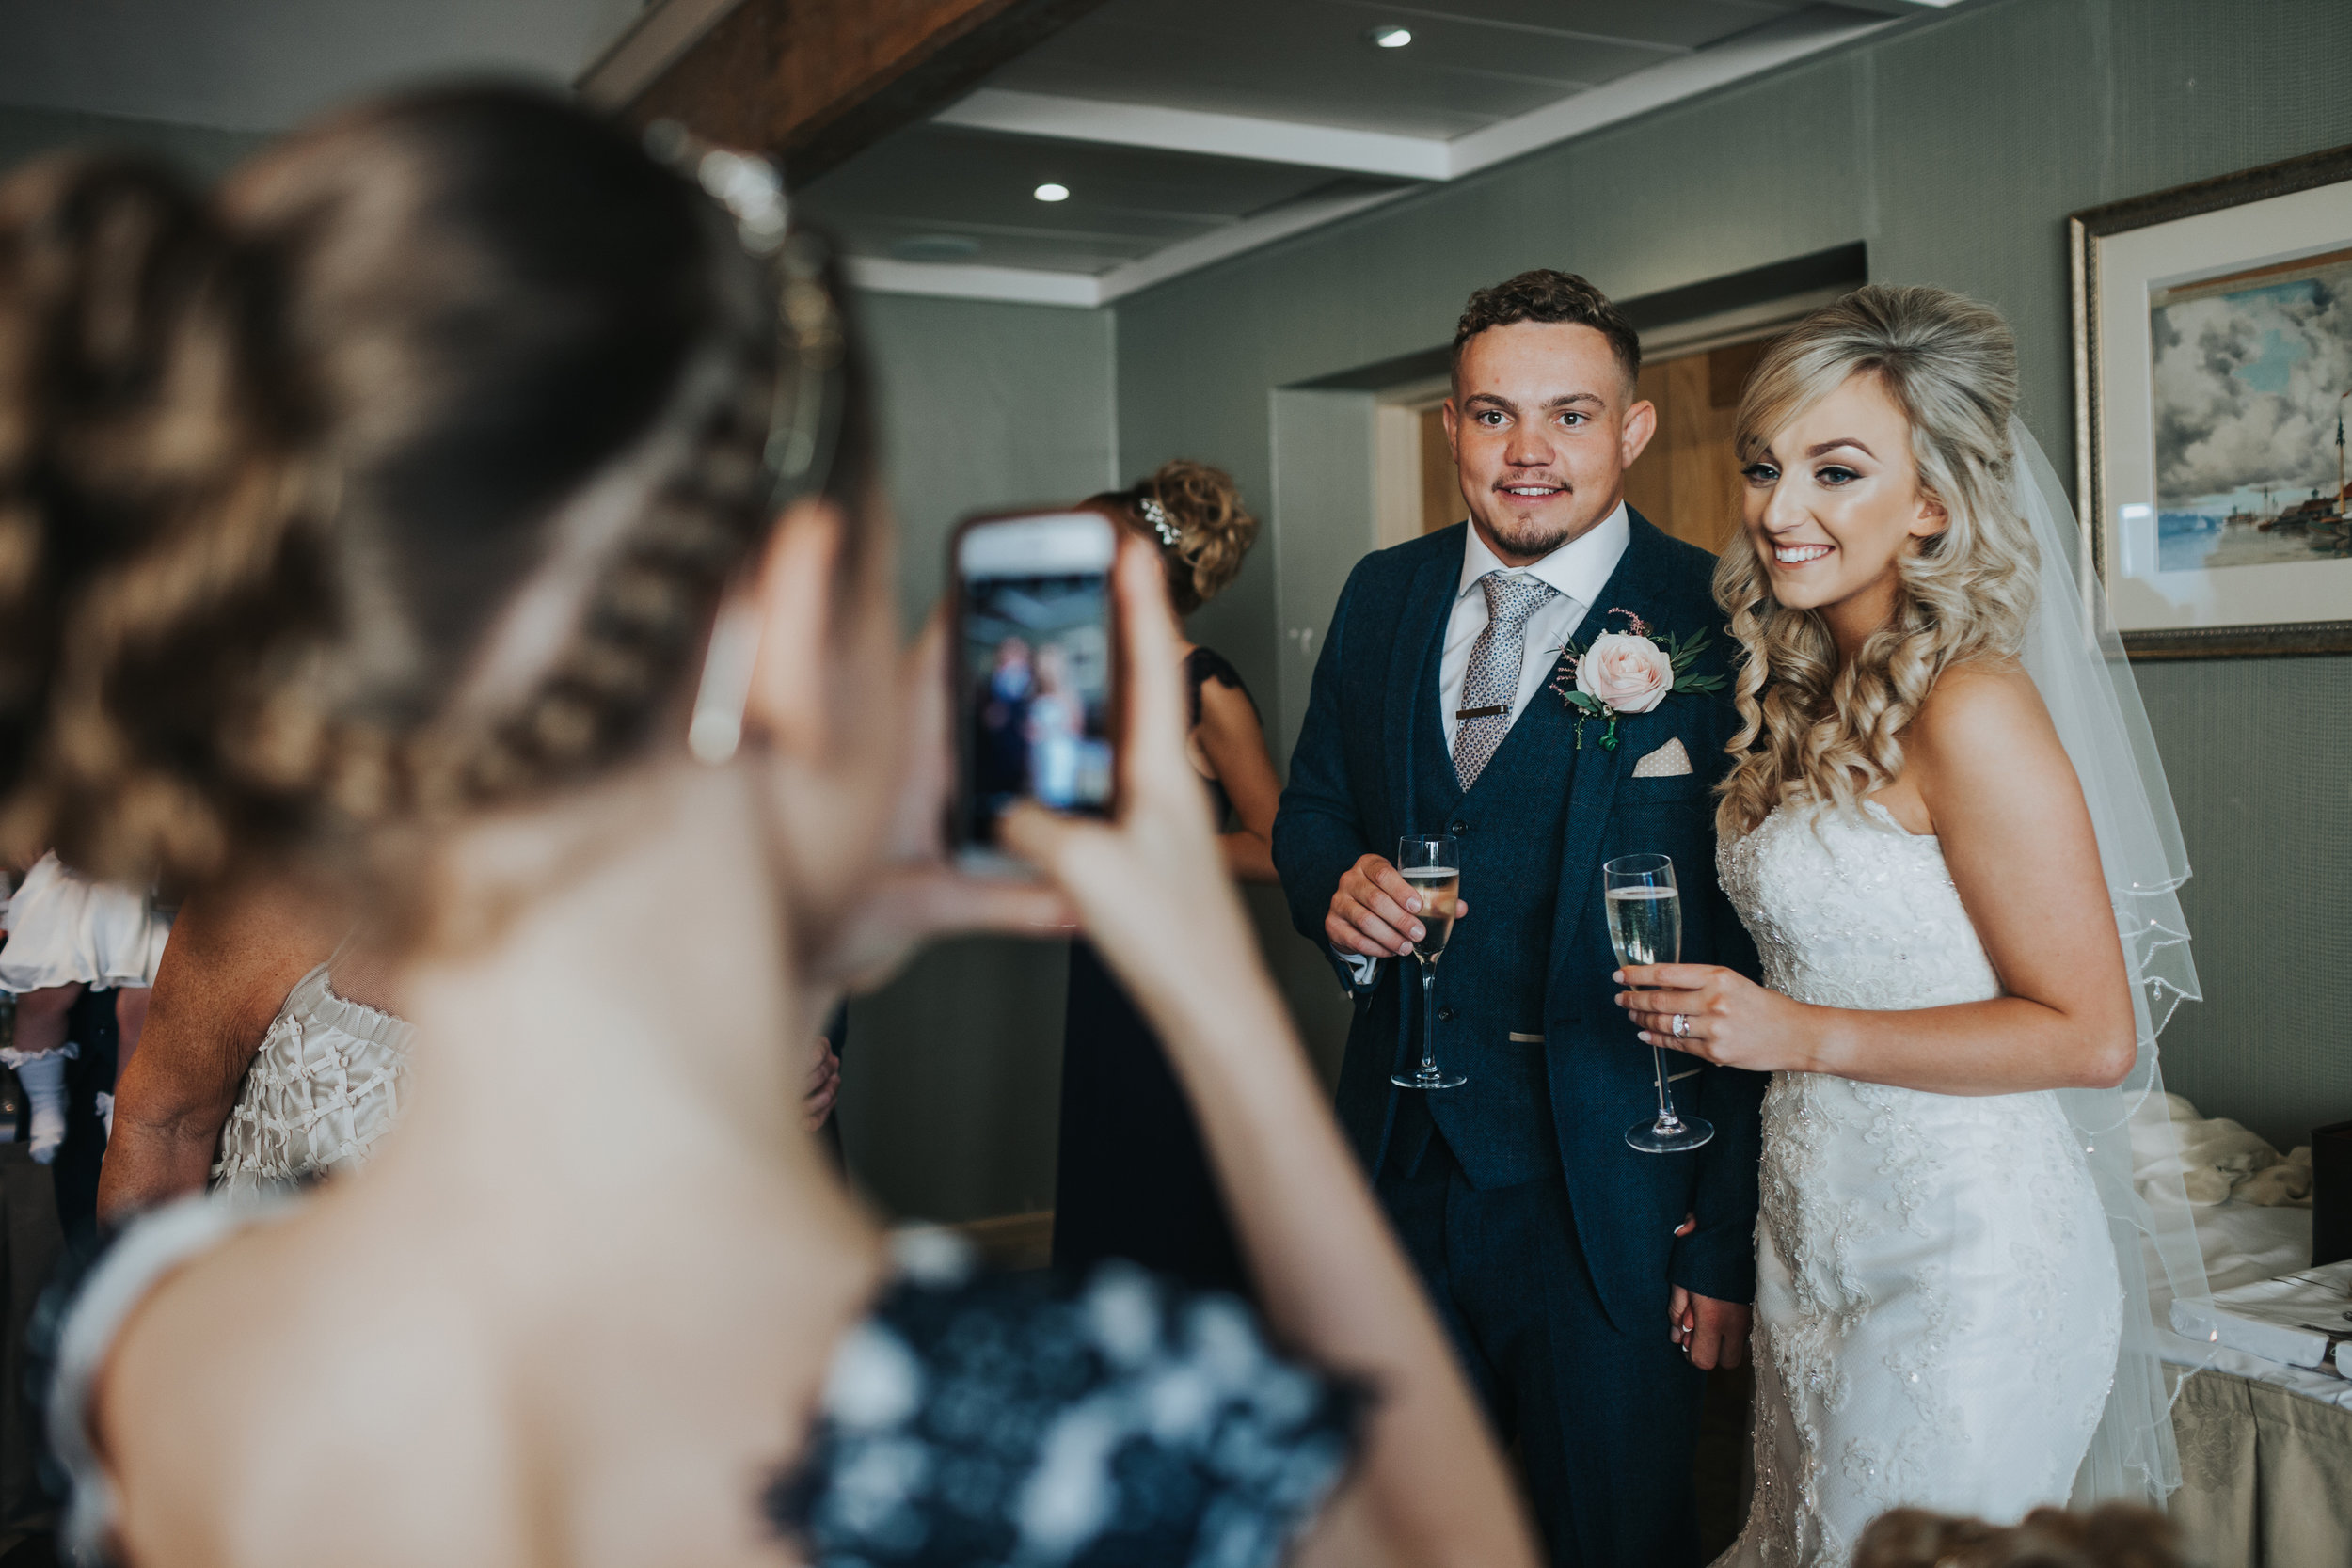 Bride and groom pose for their flower girl to take a photograph on her phone.